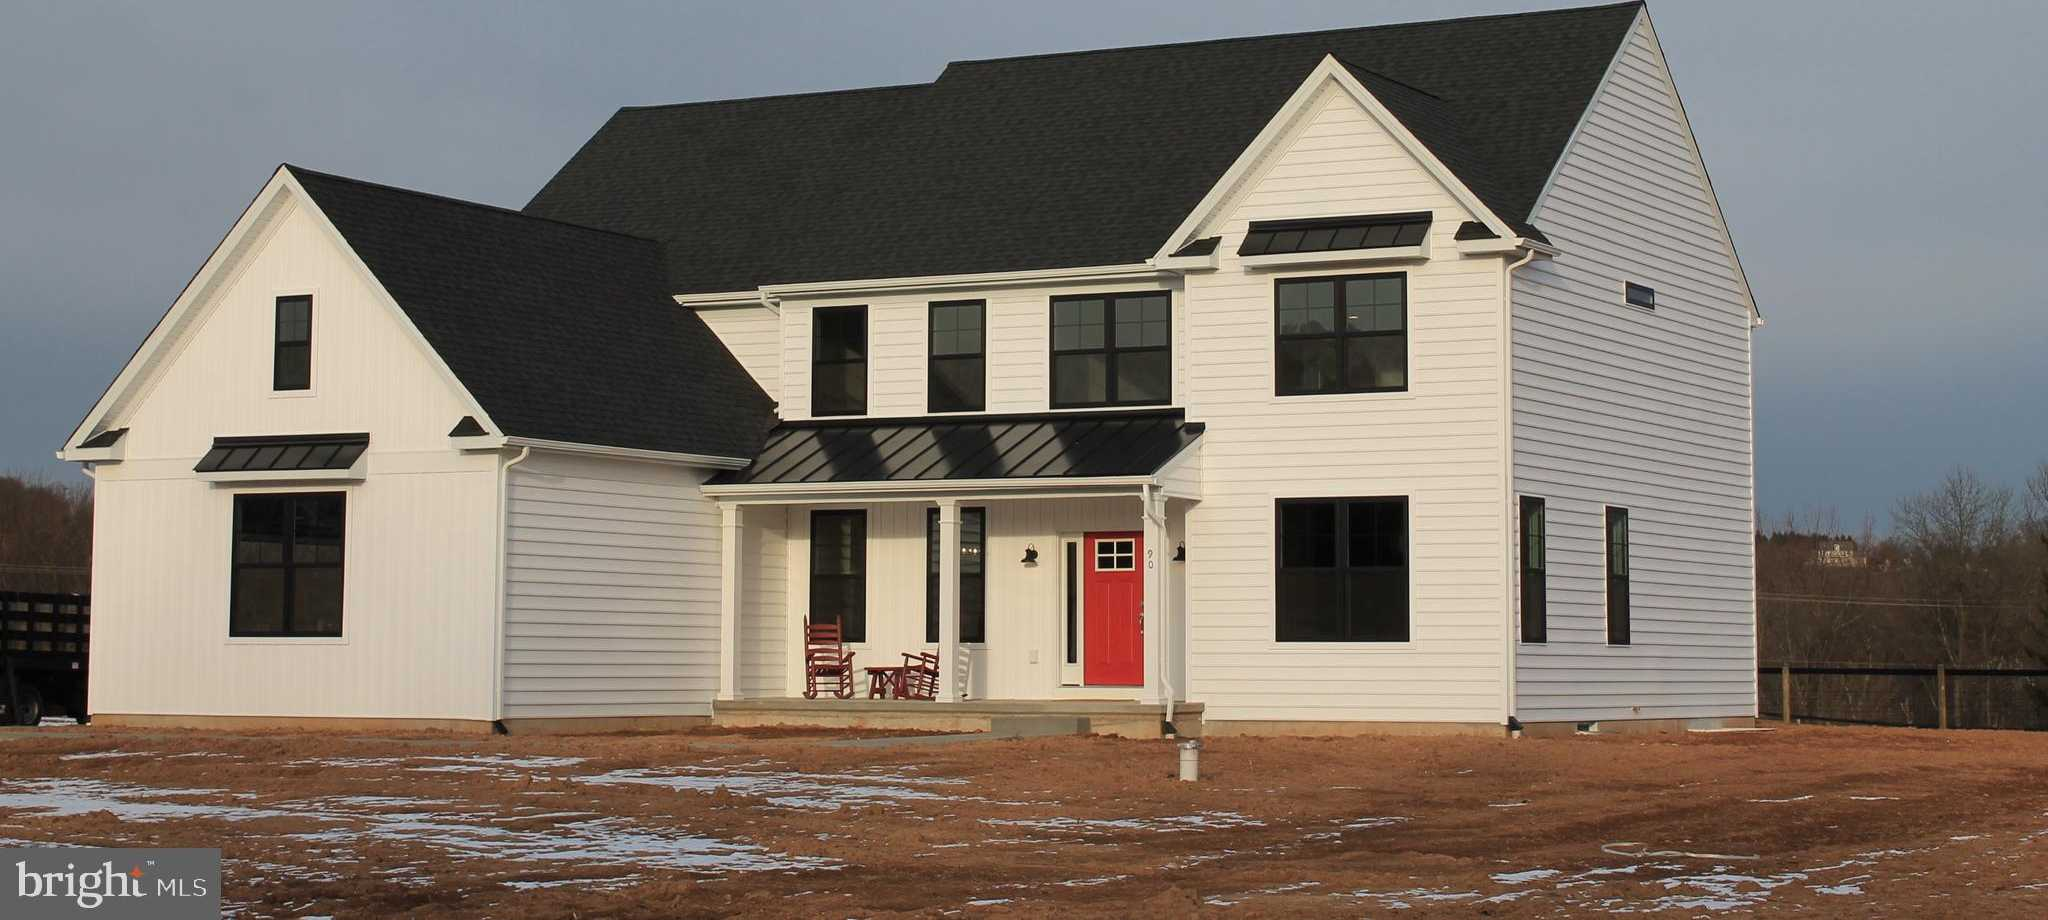 $507,900 - 4Br/4Ba -  for Sale in None Available, Barto